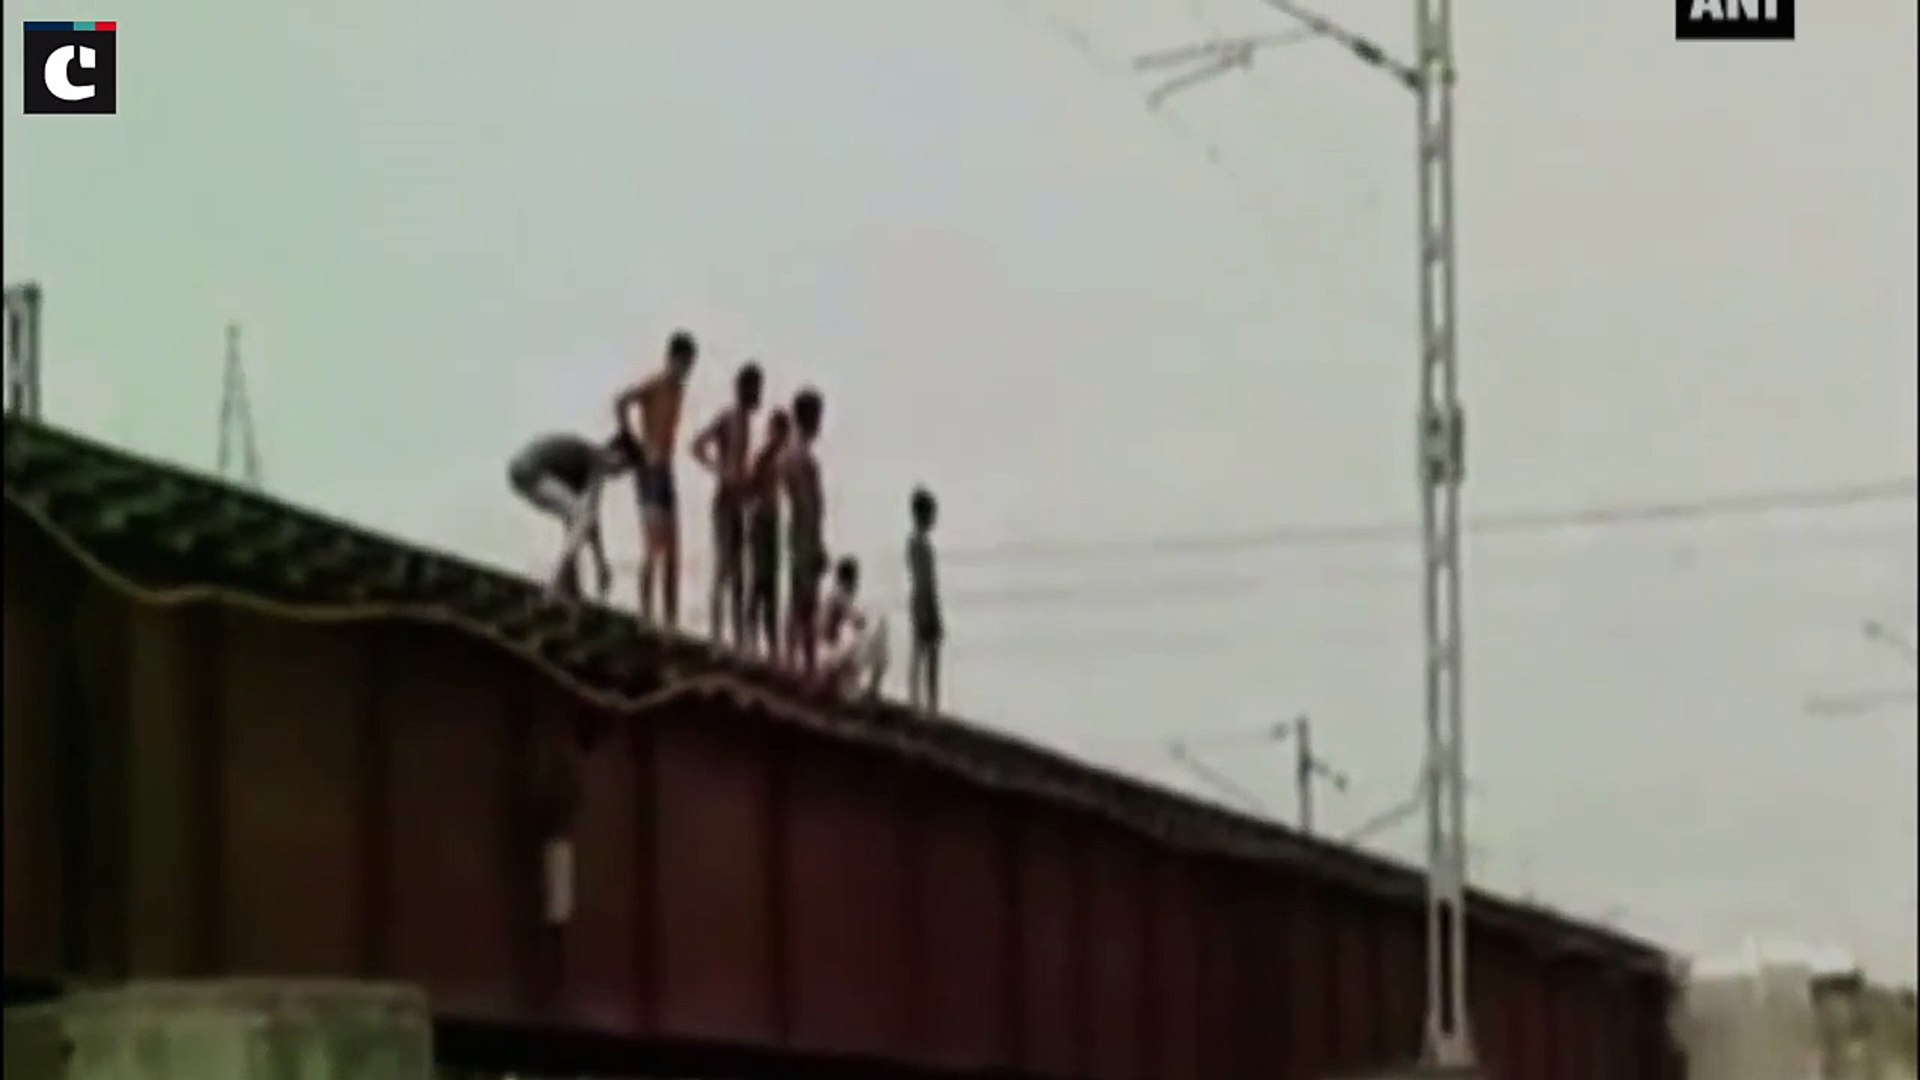 Young boys jump off bridge seconds before train passes through